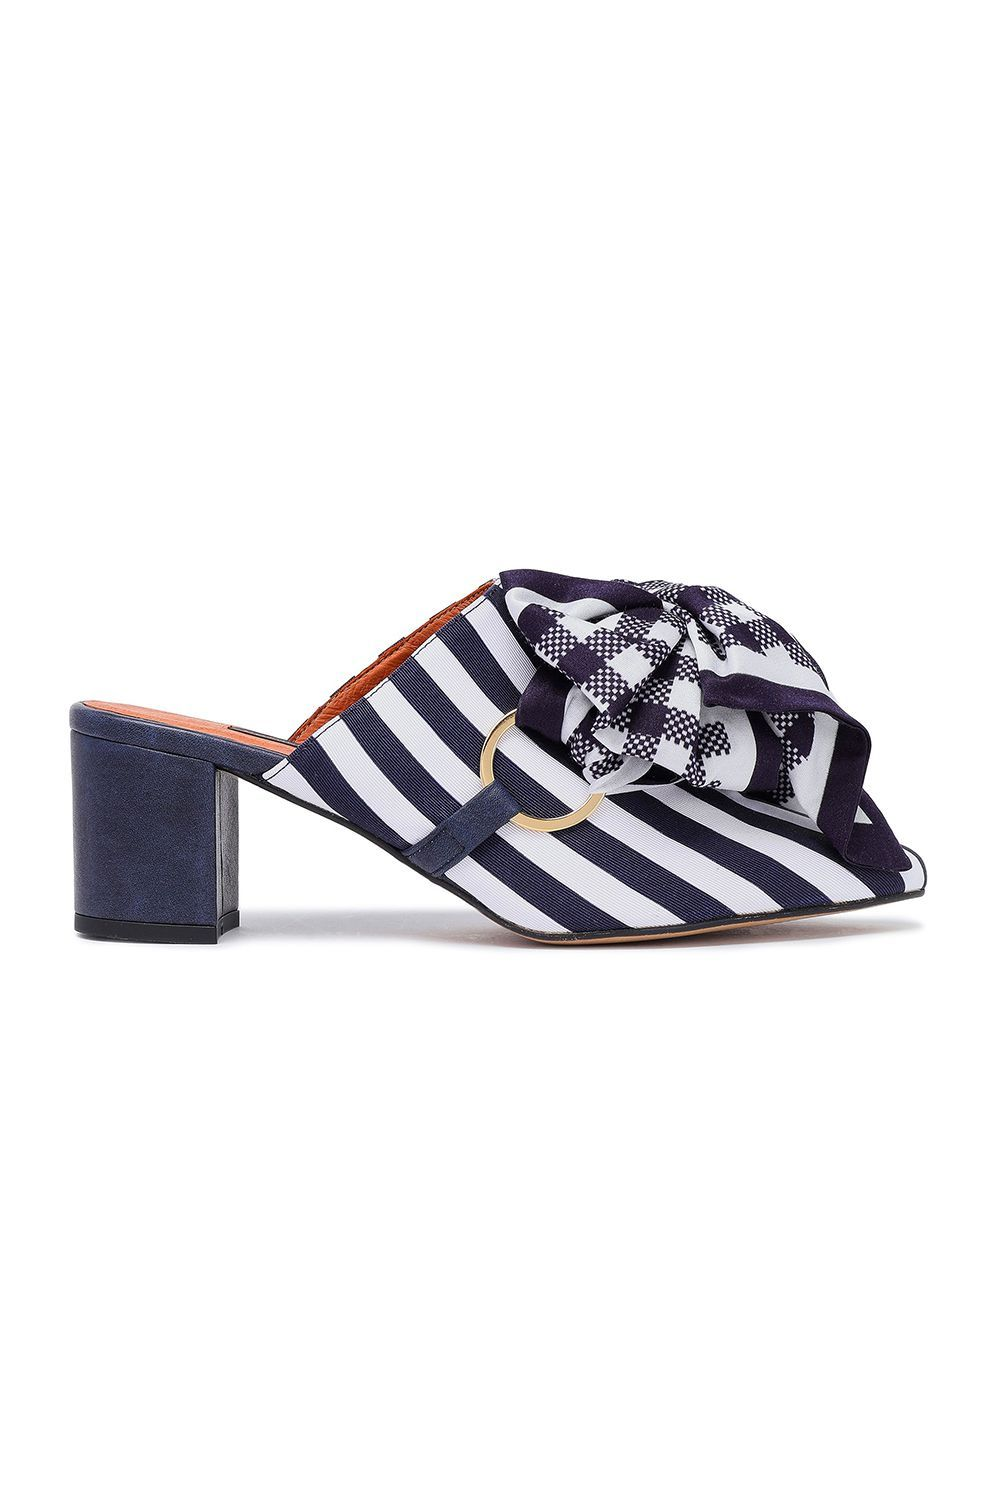 Bow-Embellished Striped Satin Mules Mother of Pearl theoutnet.com $148.00 SHOP IT